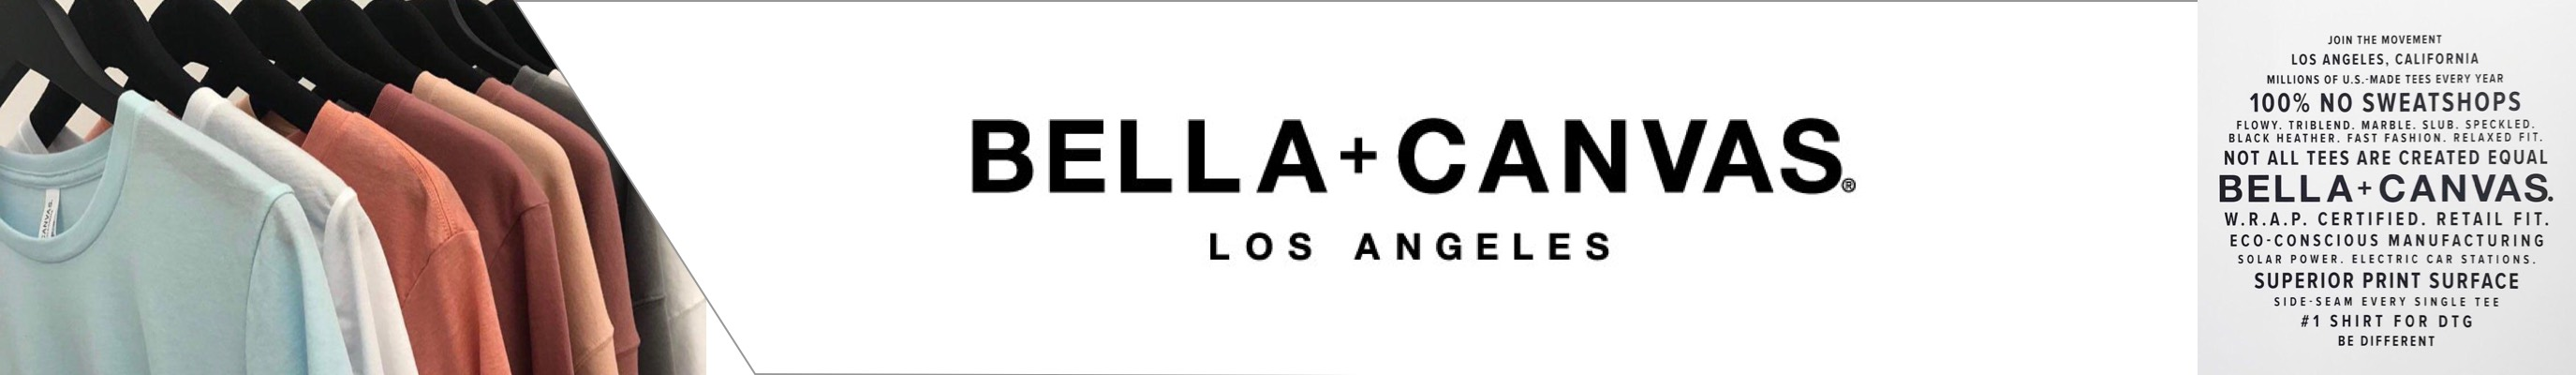 promo-header-bella.jpg